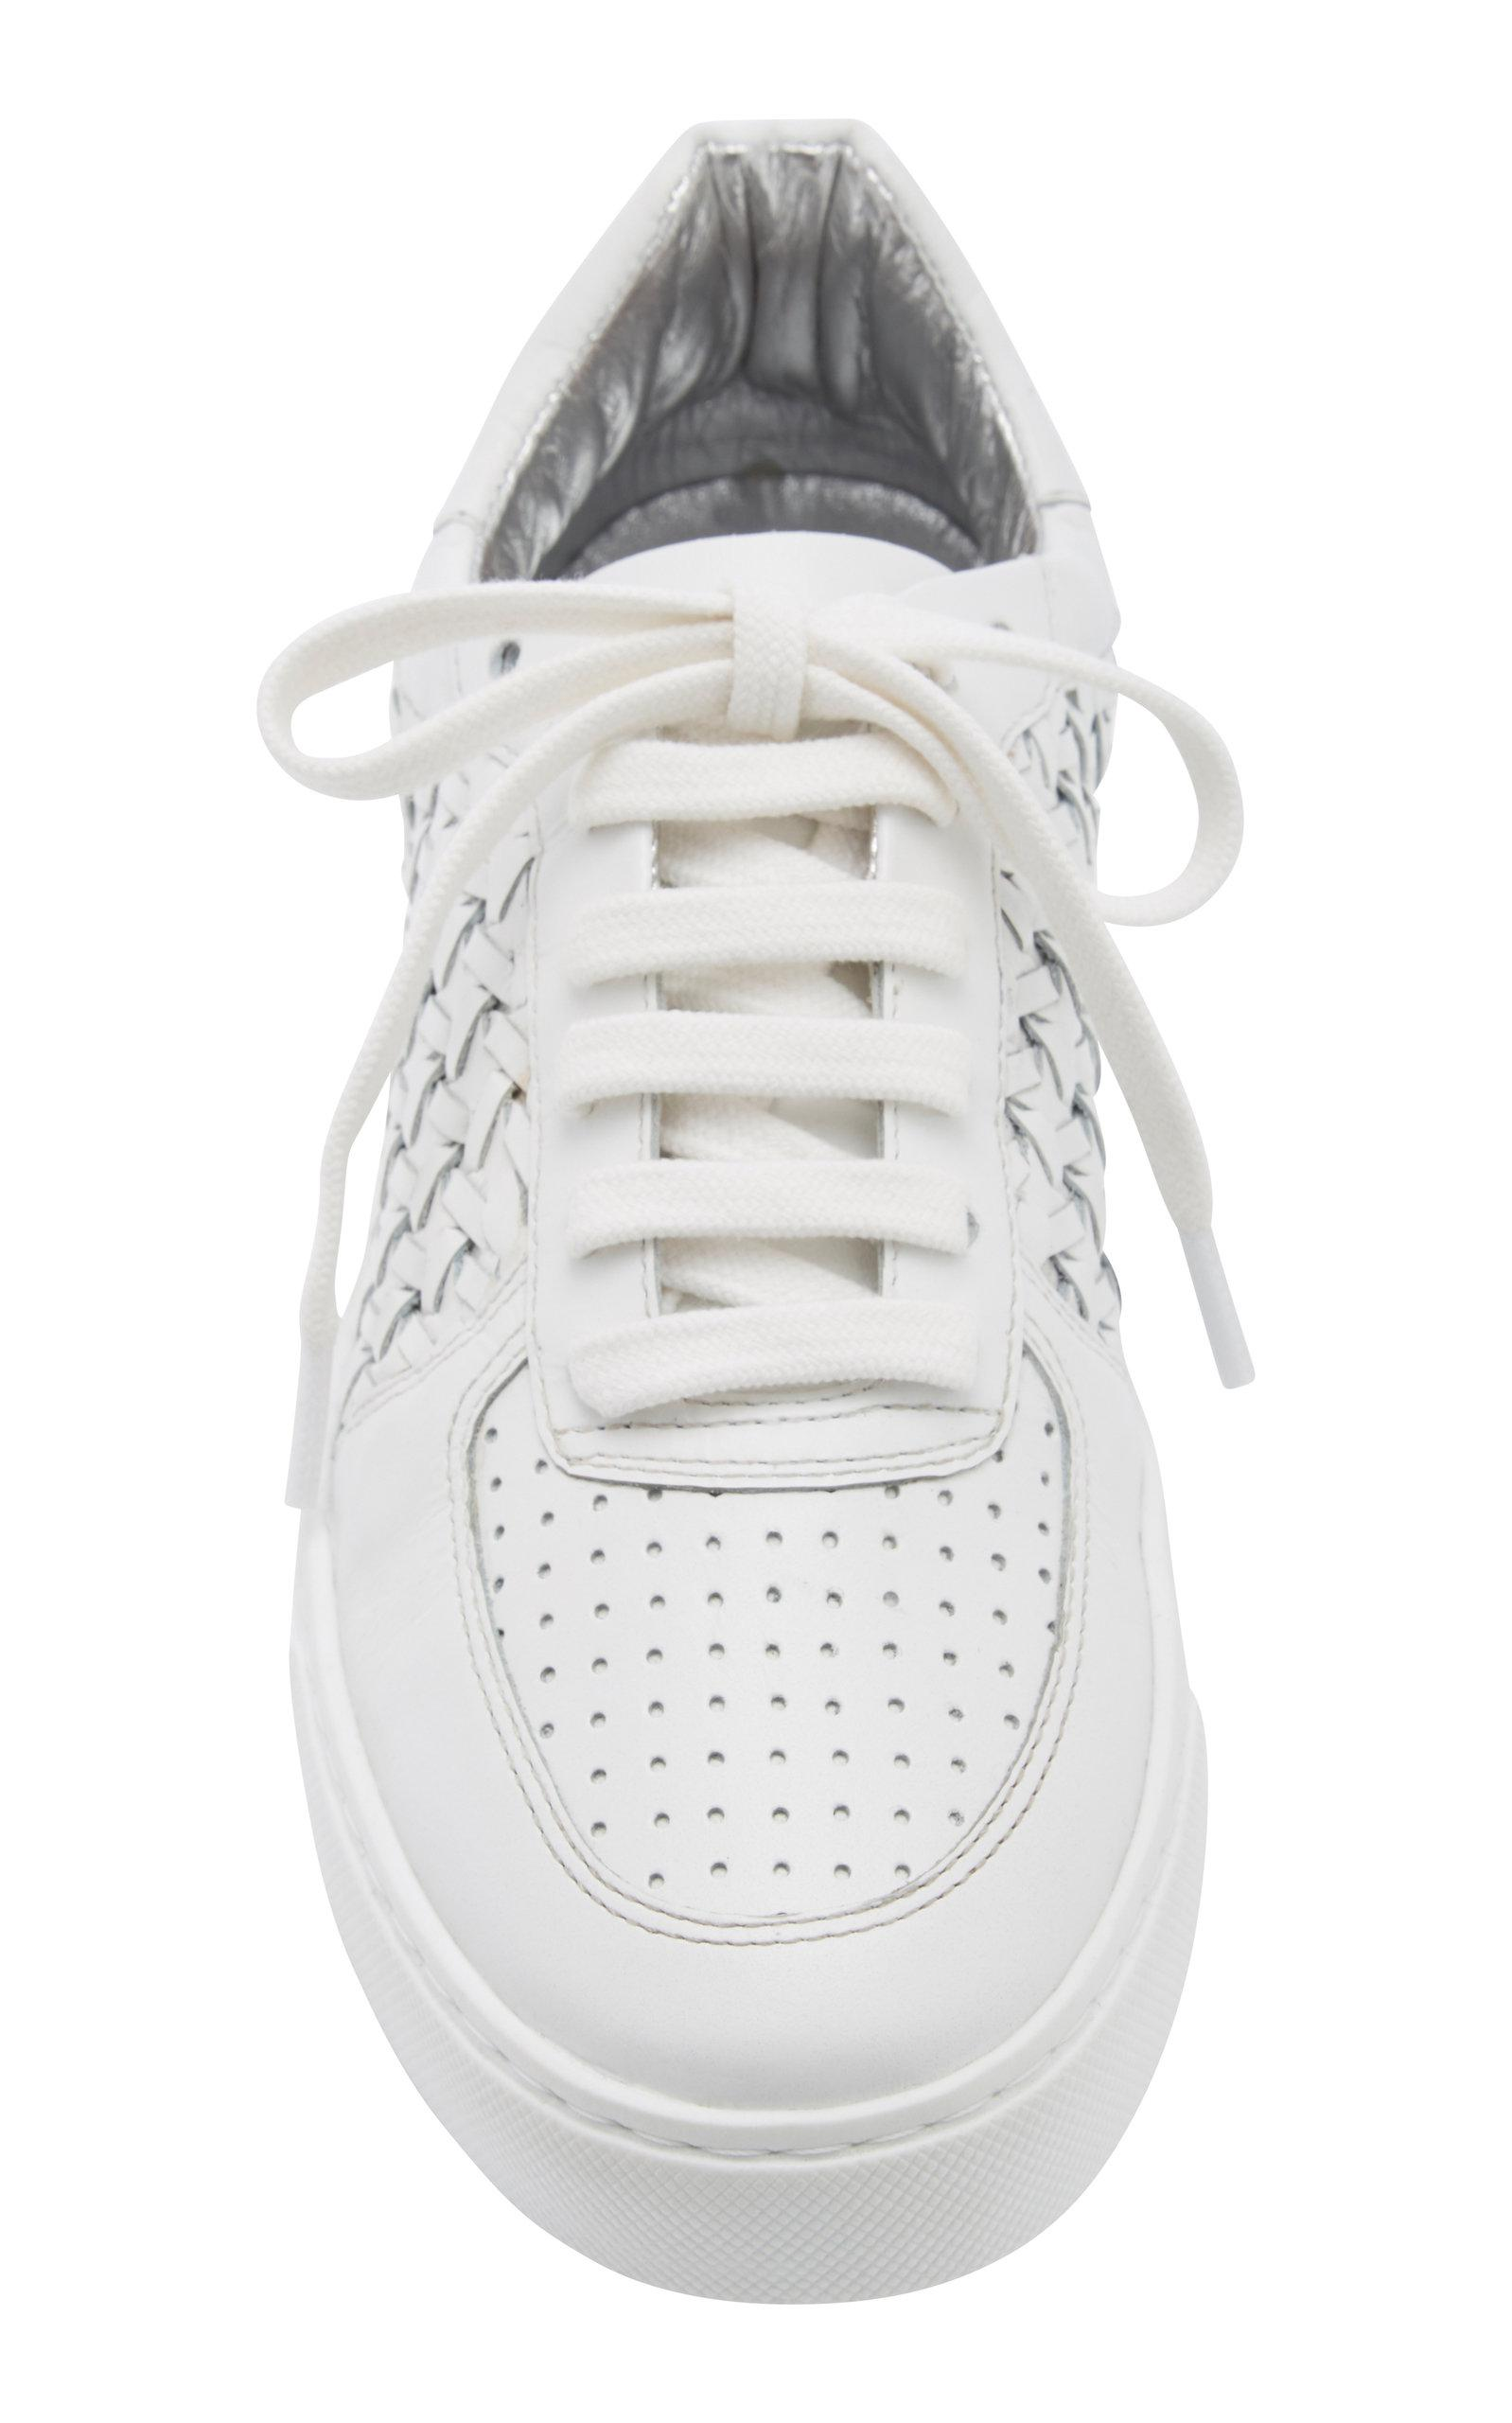 Zimmermann White Woven Sneaker $395 Men's Clothing